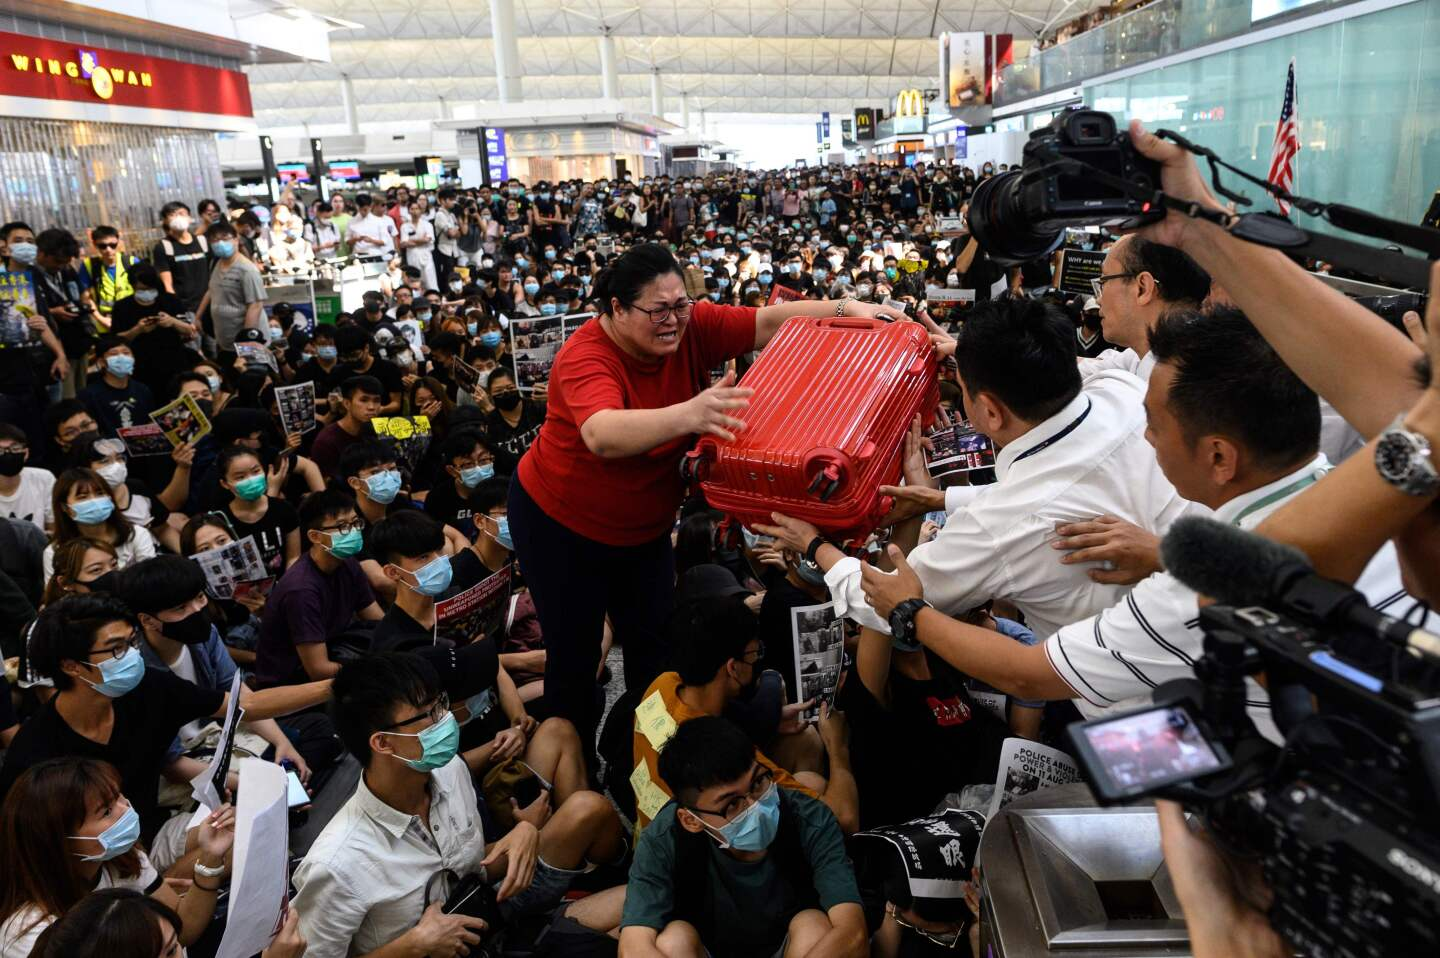 A tourist (C) gives her luggage to security guards as she tries to enter the departures gate during another demonstration by pro-democracy protesters at Hong Kong's international airport on August 13, 2019. - Protesters blocked passengers at departure halls of Hong Kong airport on August 13, a day after a sit-in forced authorities to cancel all flights to and from the major international hub. (Photo by Philip FONG / AFP)PHILIP FONG/AFP/Getty Images ** OUTS - ELSENT, FPG, CM - OUTS * NM, PH, VA if sourced by CT, LA or MoD **